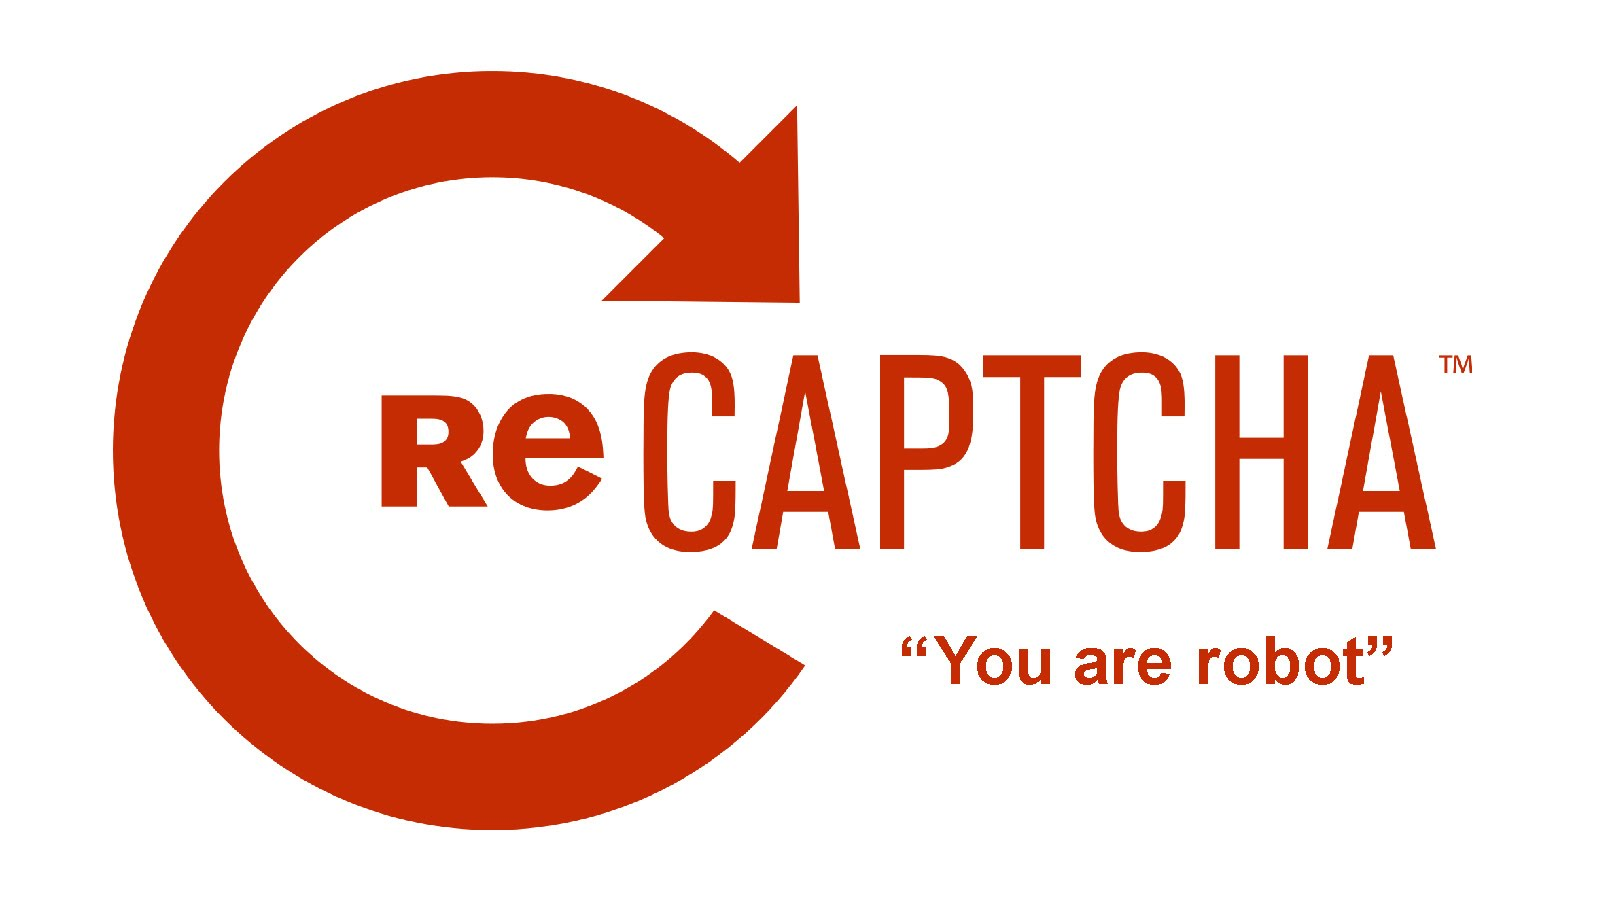 A-newly-discovered-fishing-campaing-is-using-a-fake-google-recaptcha-system